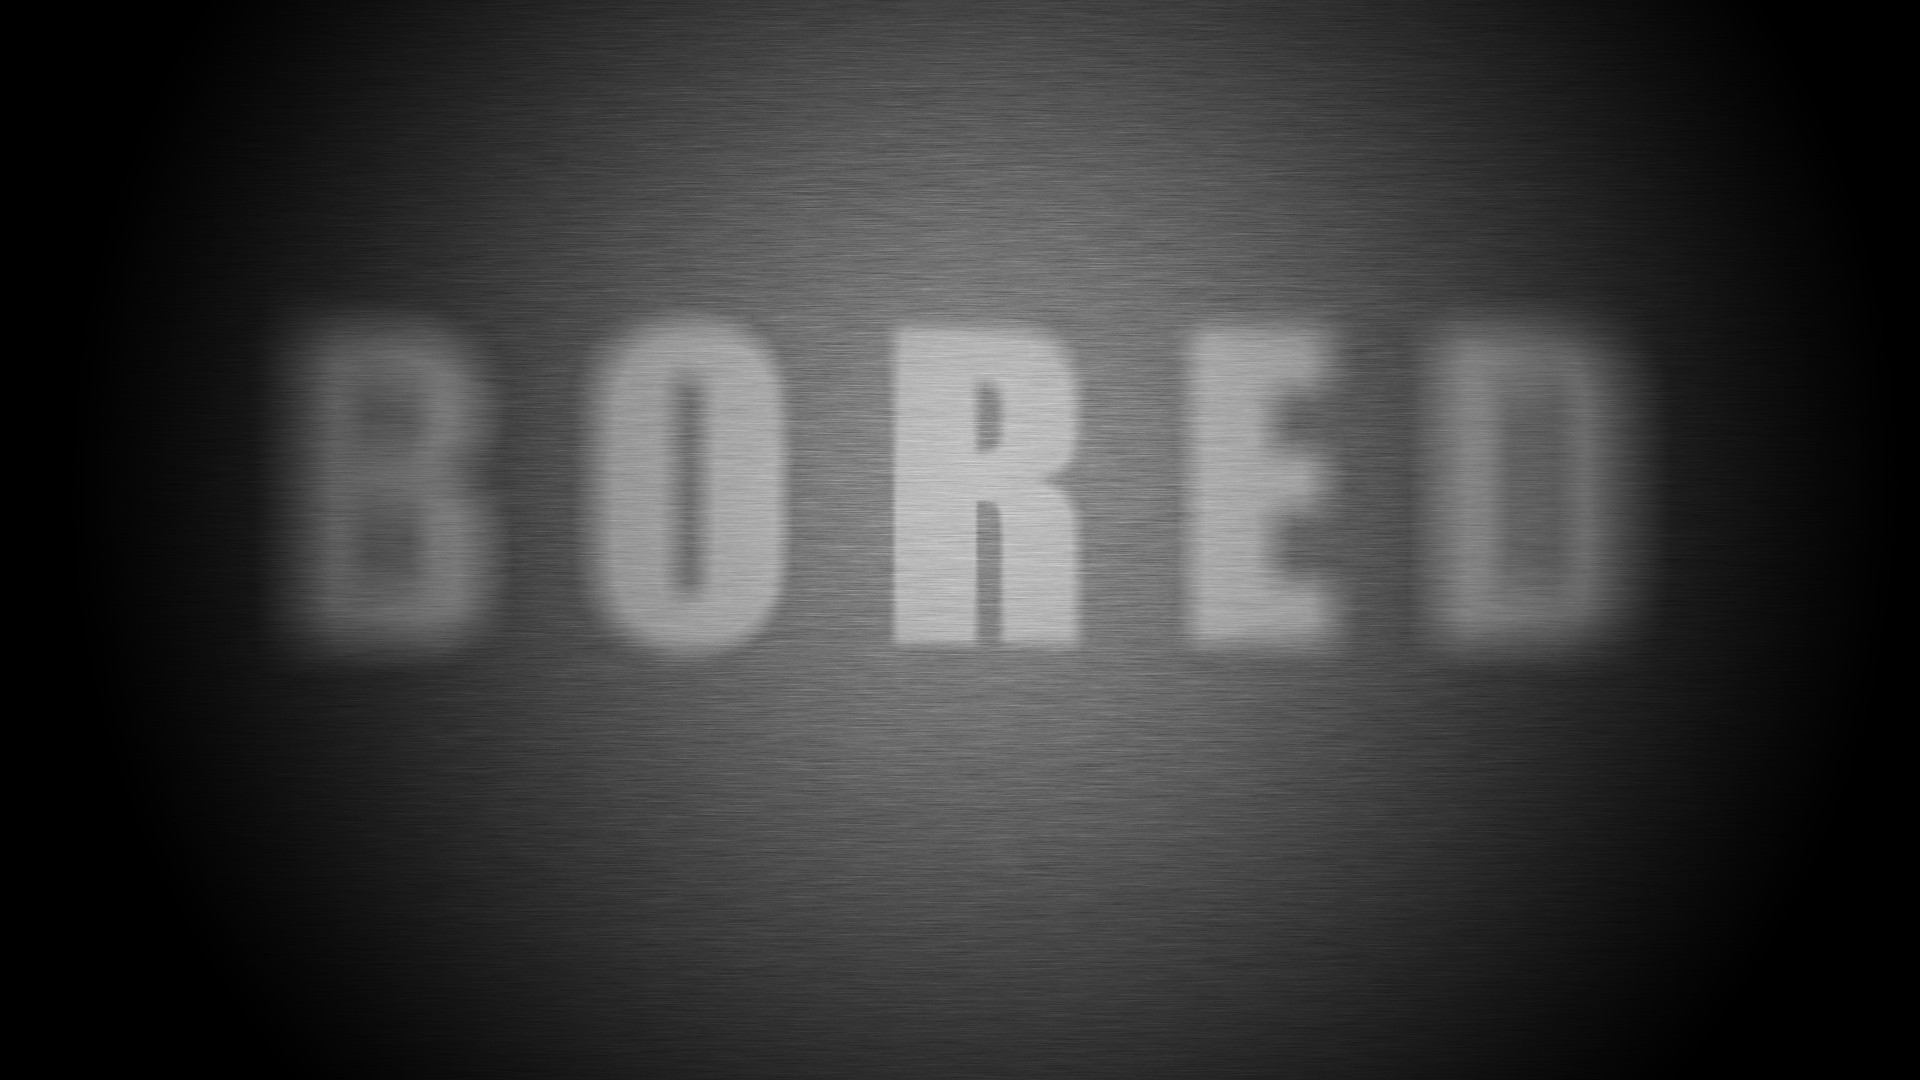 General 1920x1080 boredom monochrome typography blurred gray